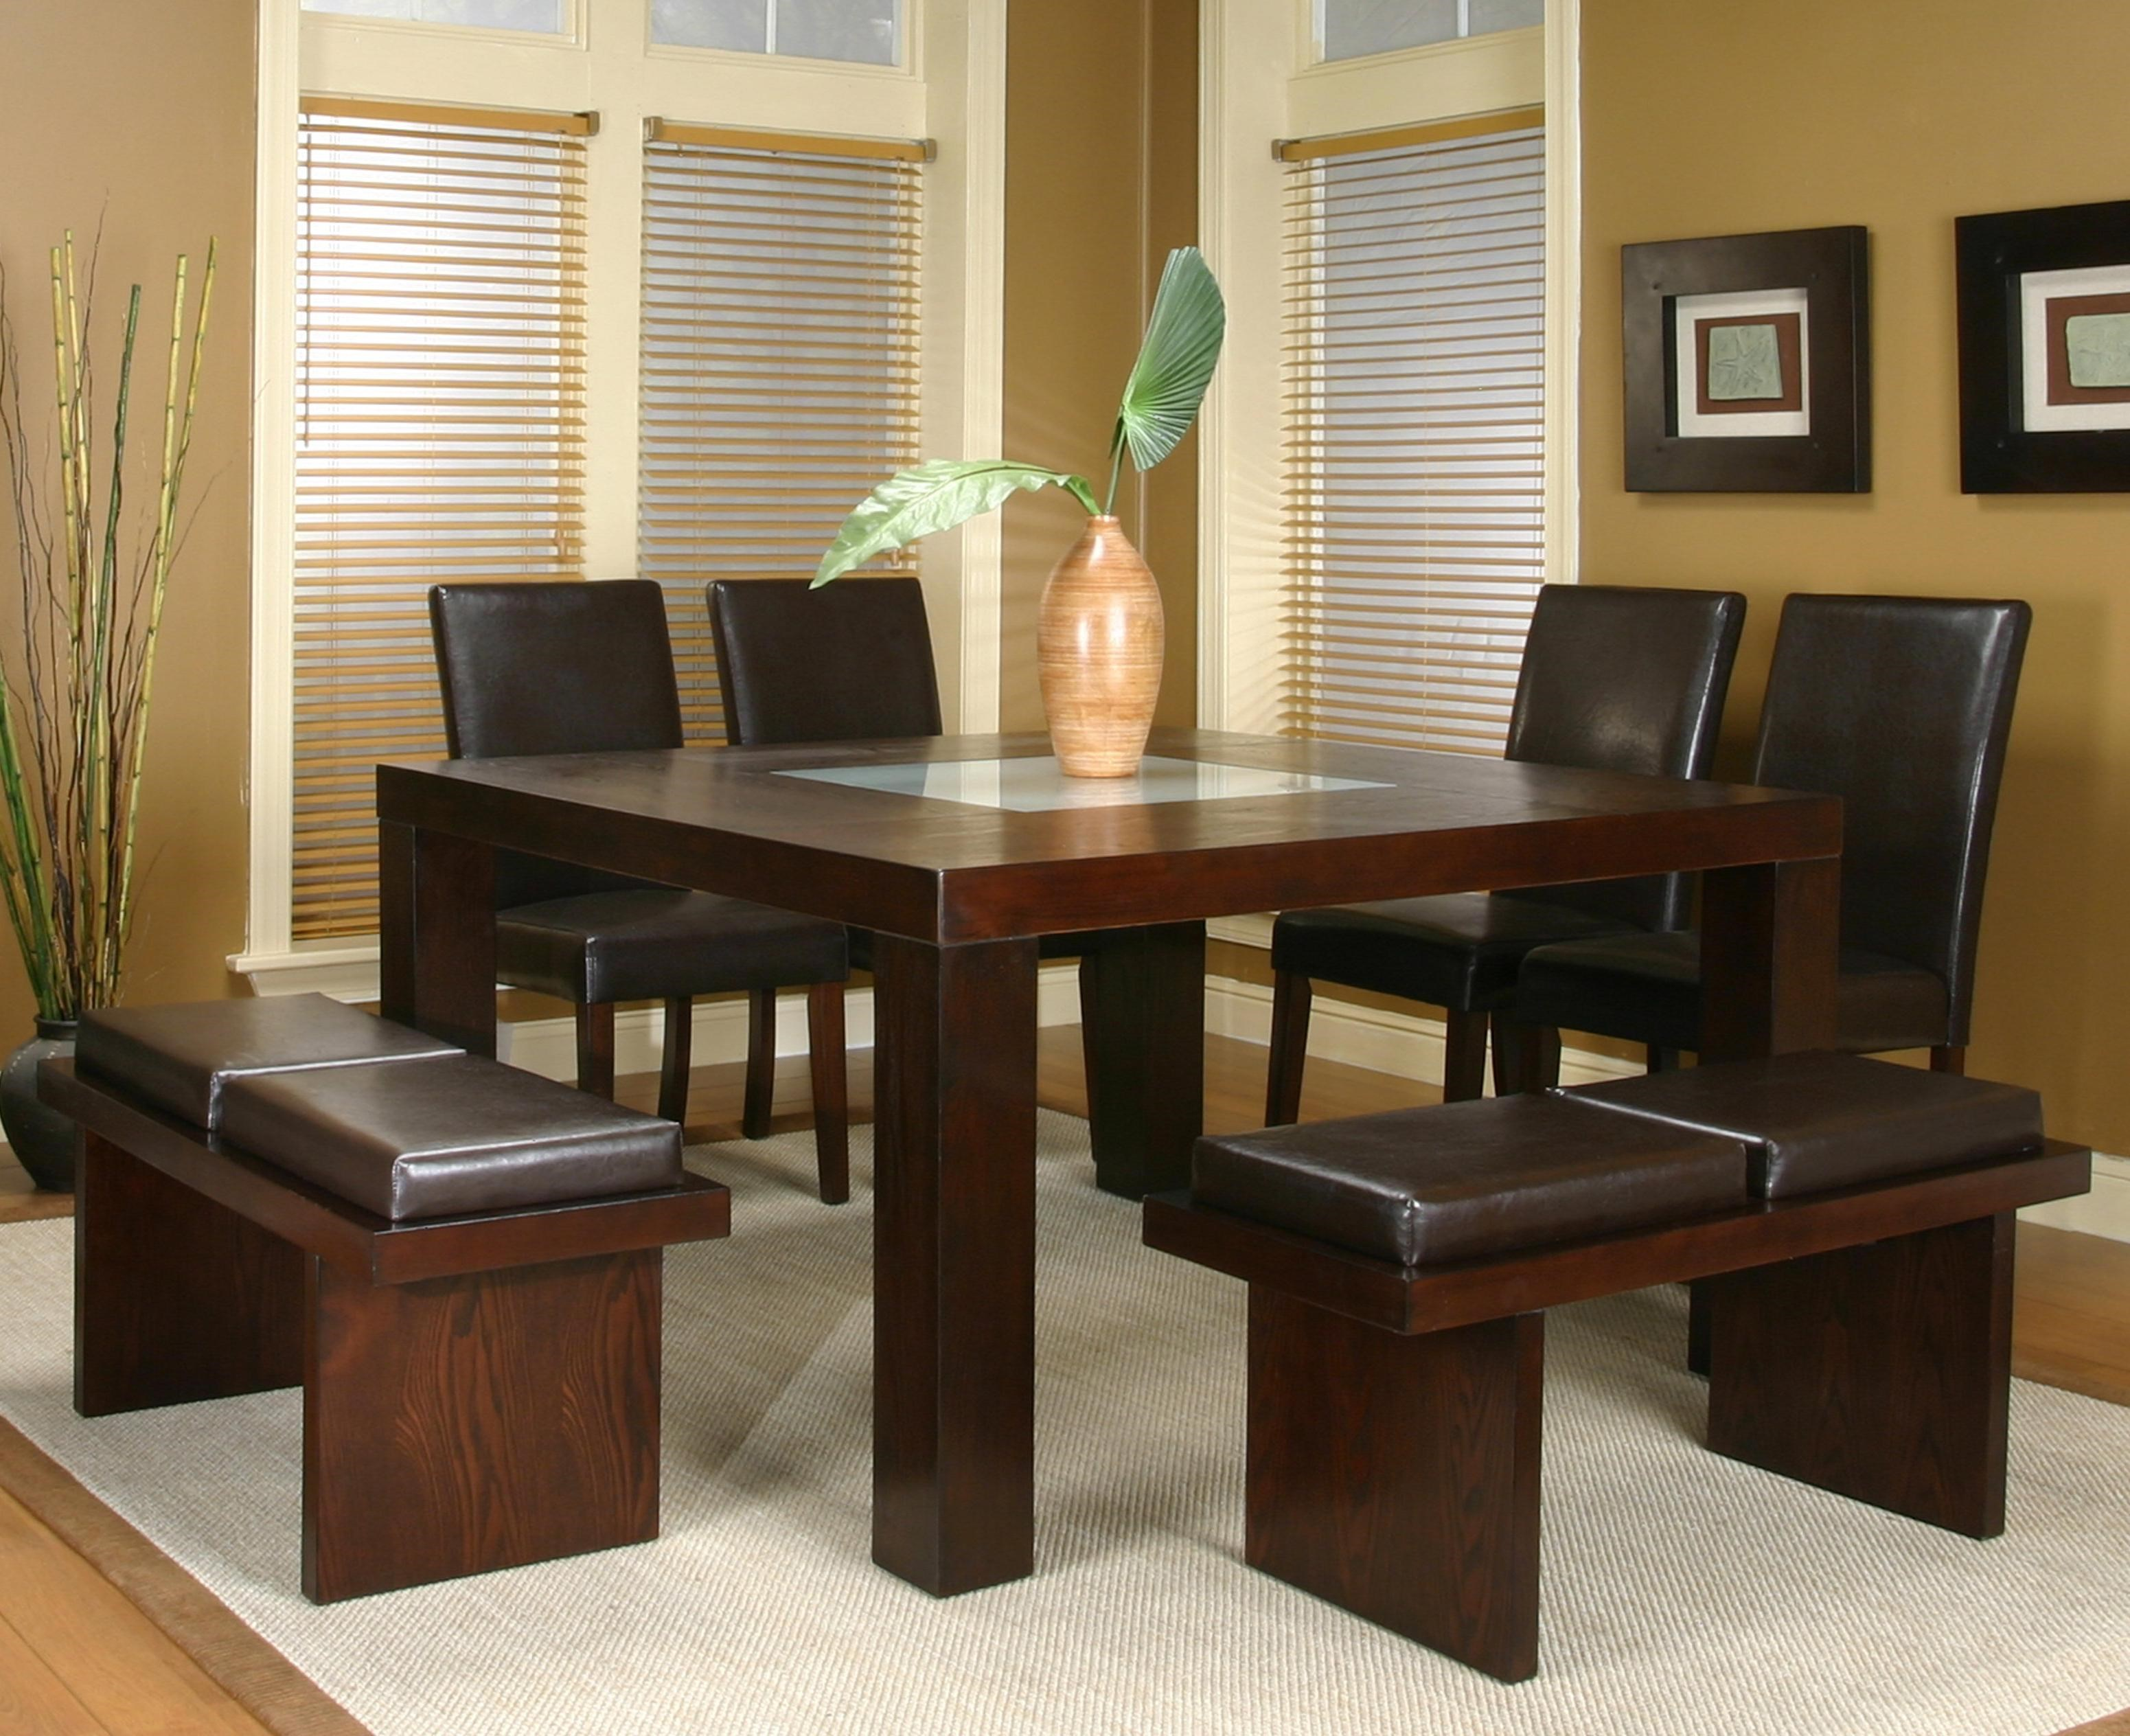 Delicieux Cramco, Inc Contemporary Design   KemperSeven Piece Dining Set